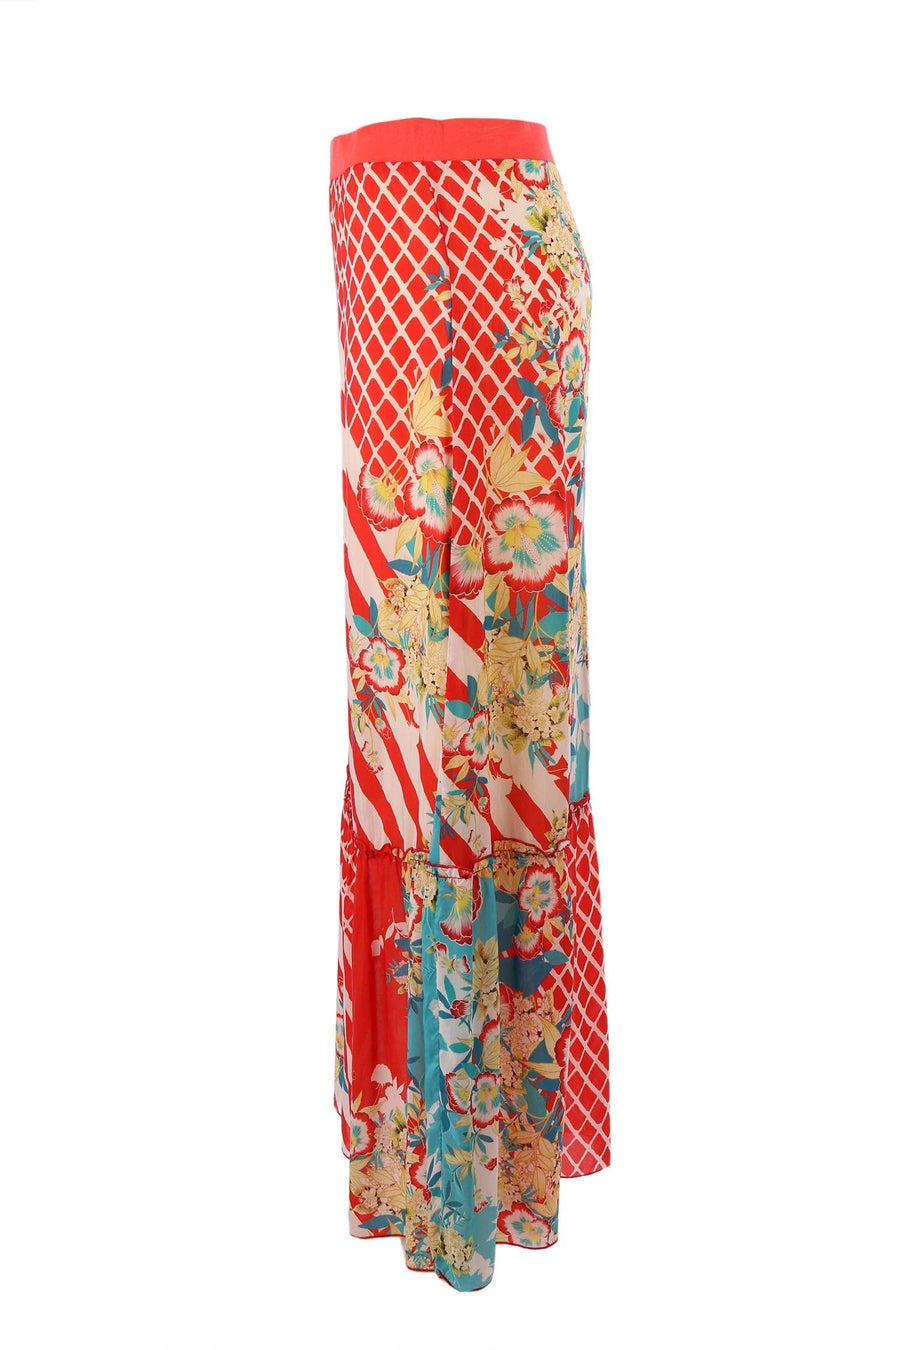 Mixed Print Maxi Skirt in Orange | FINAL SALE